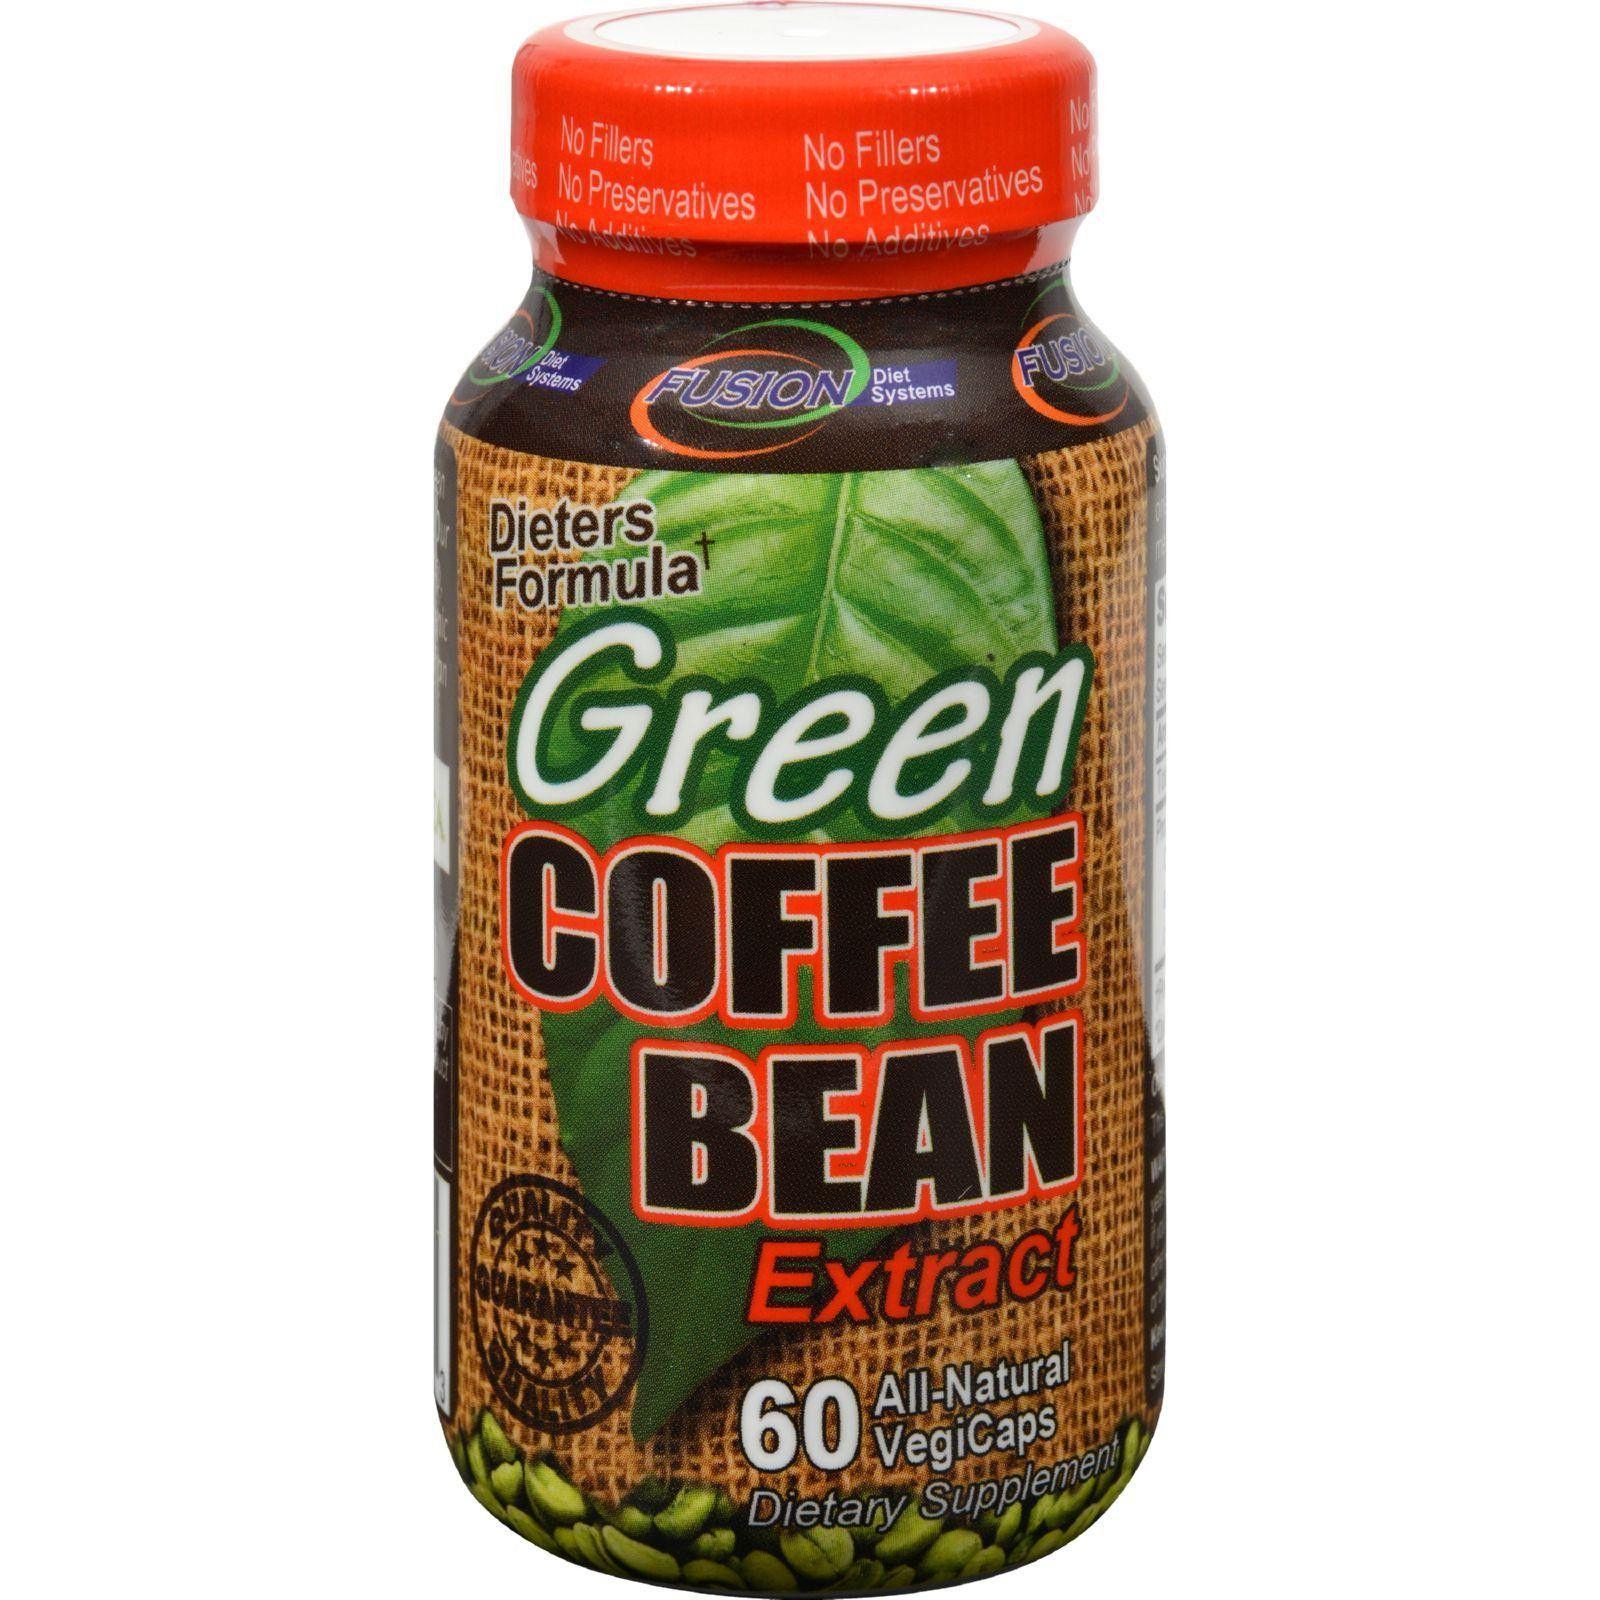 Fusion Diet Systems Green Coffee Bean Extract 60